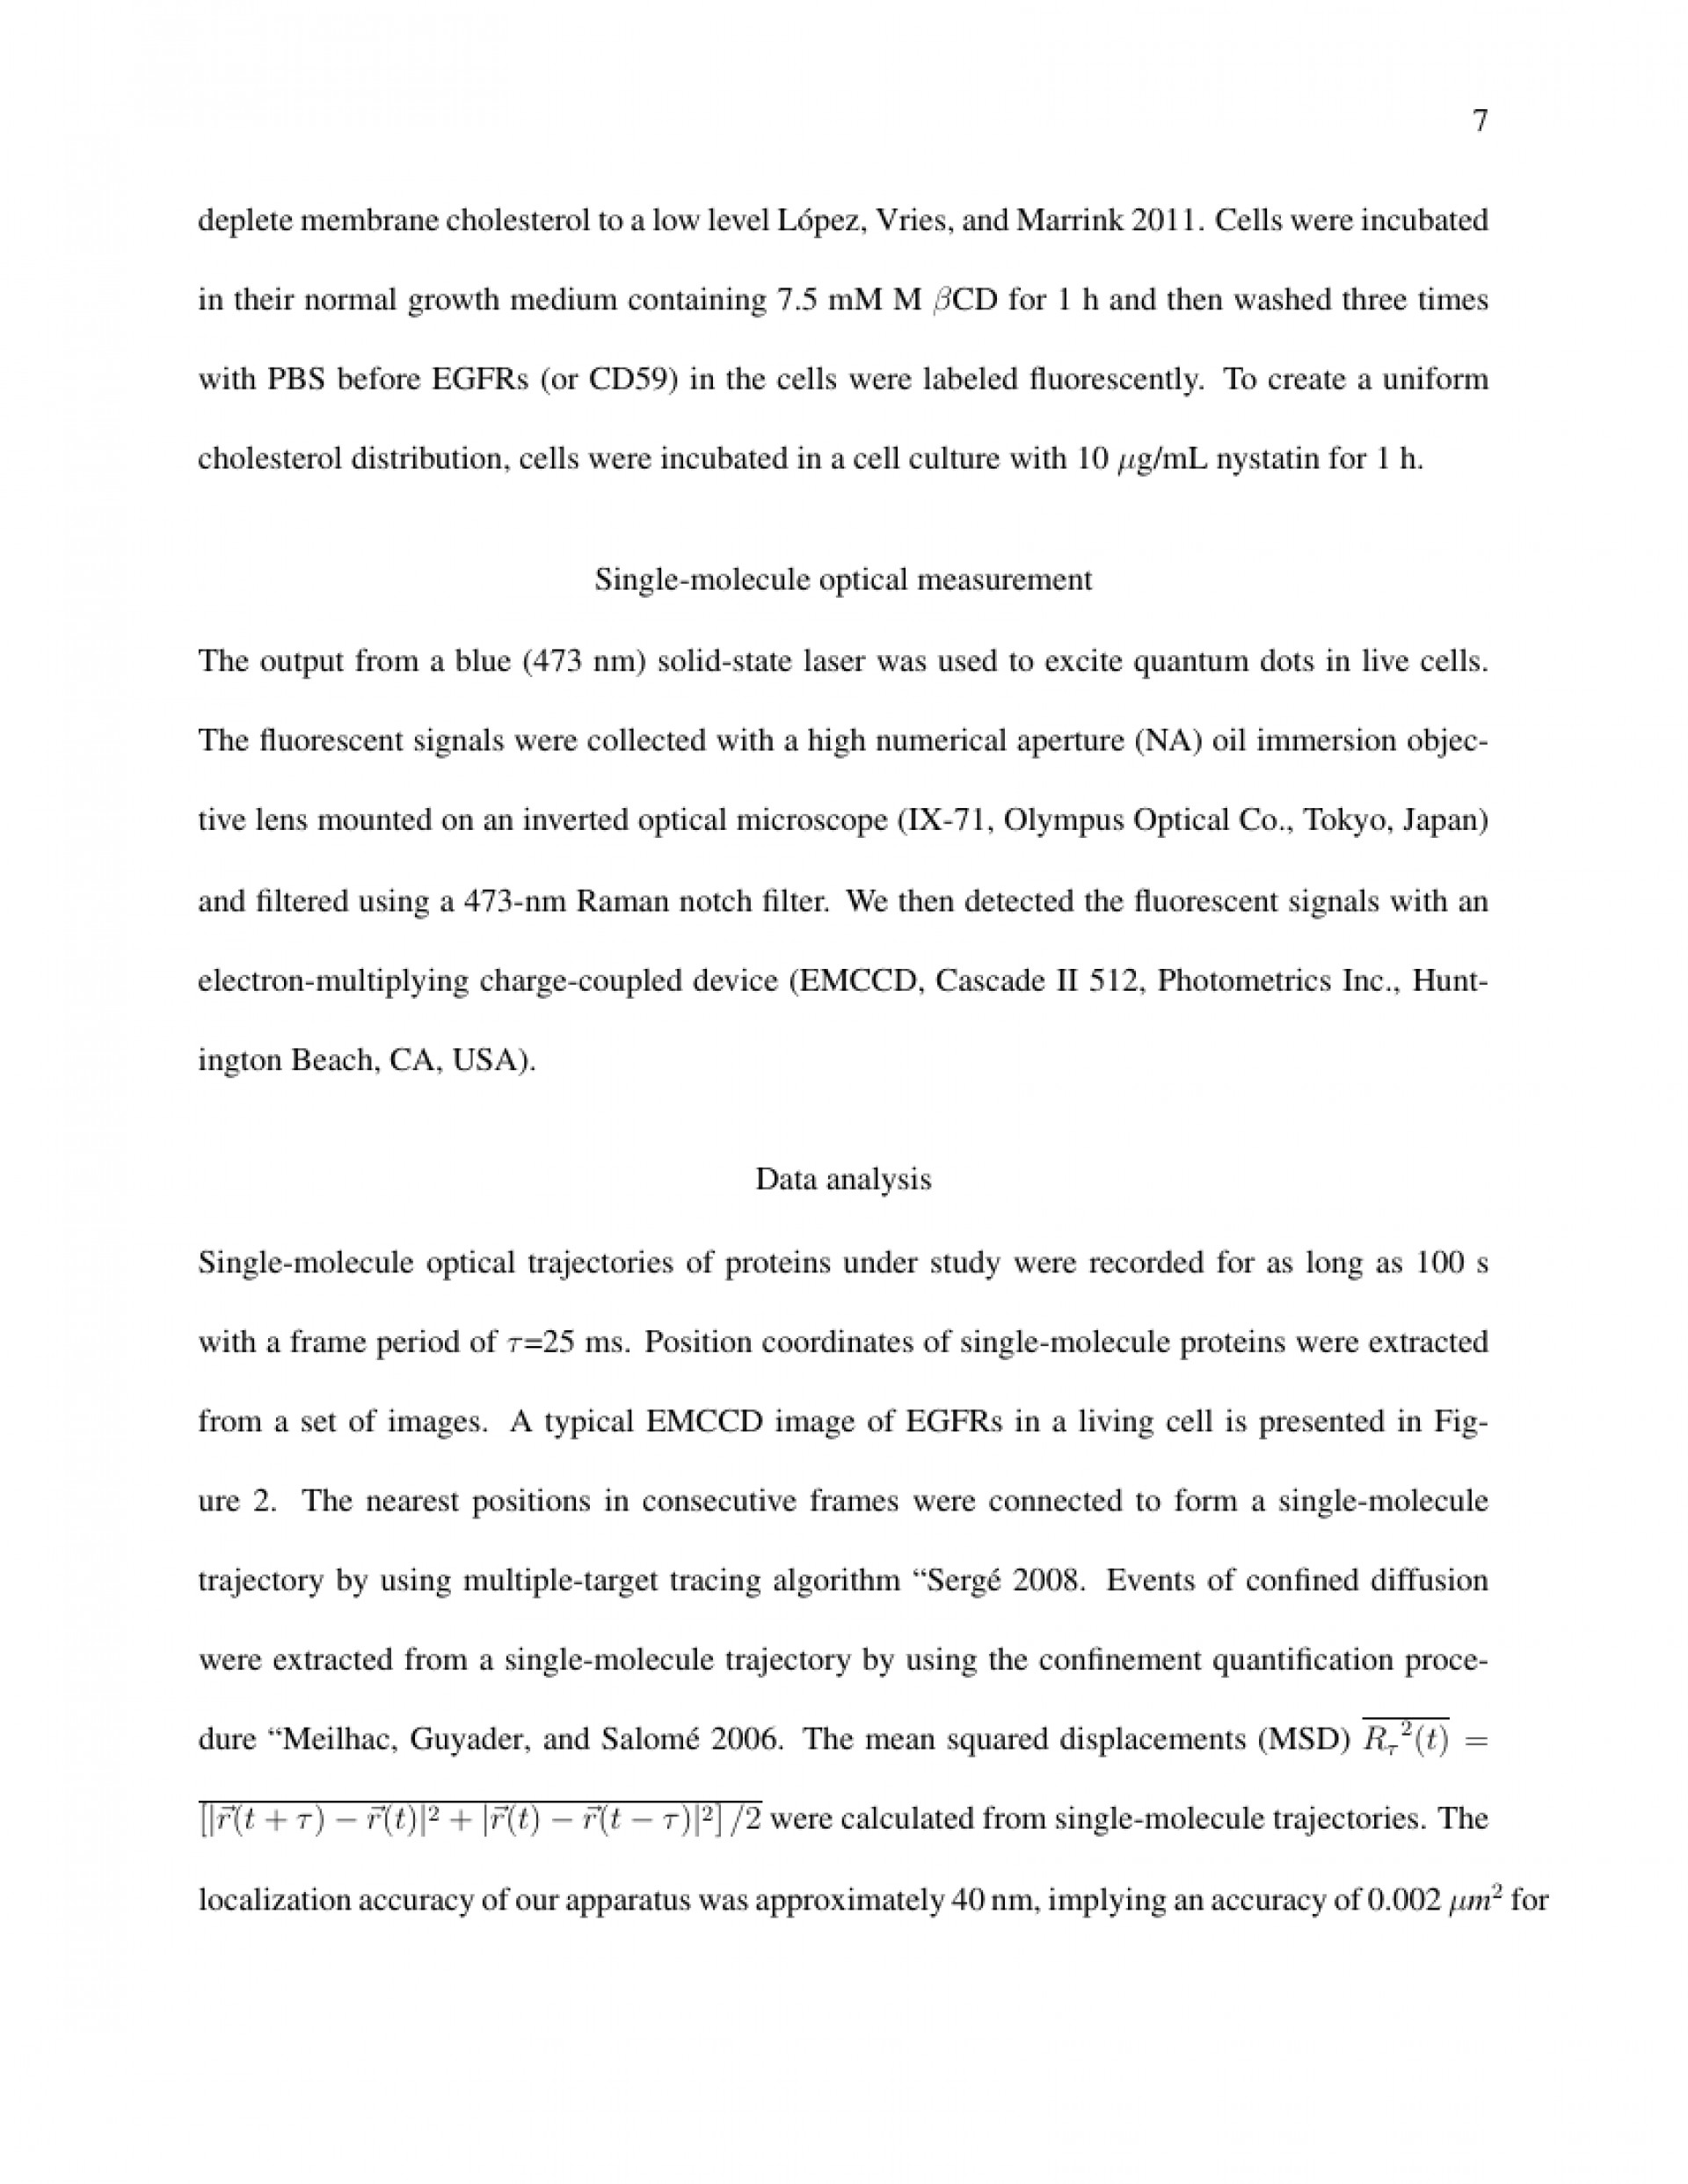 006 Article Research Paper Striking A Format The Imrad Writing Apa 1920